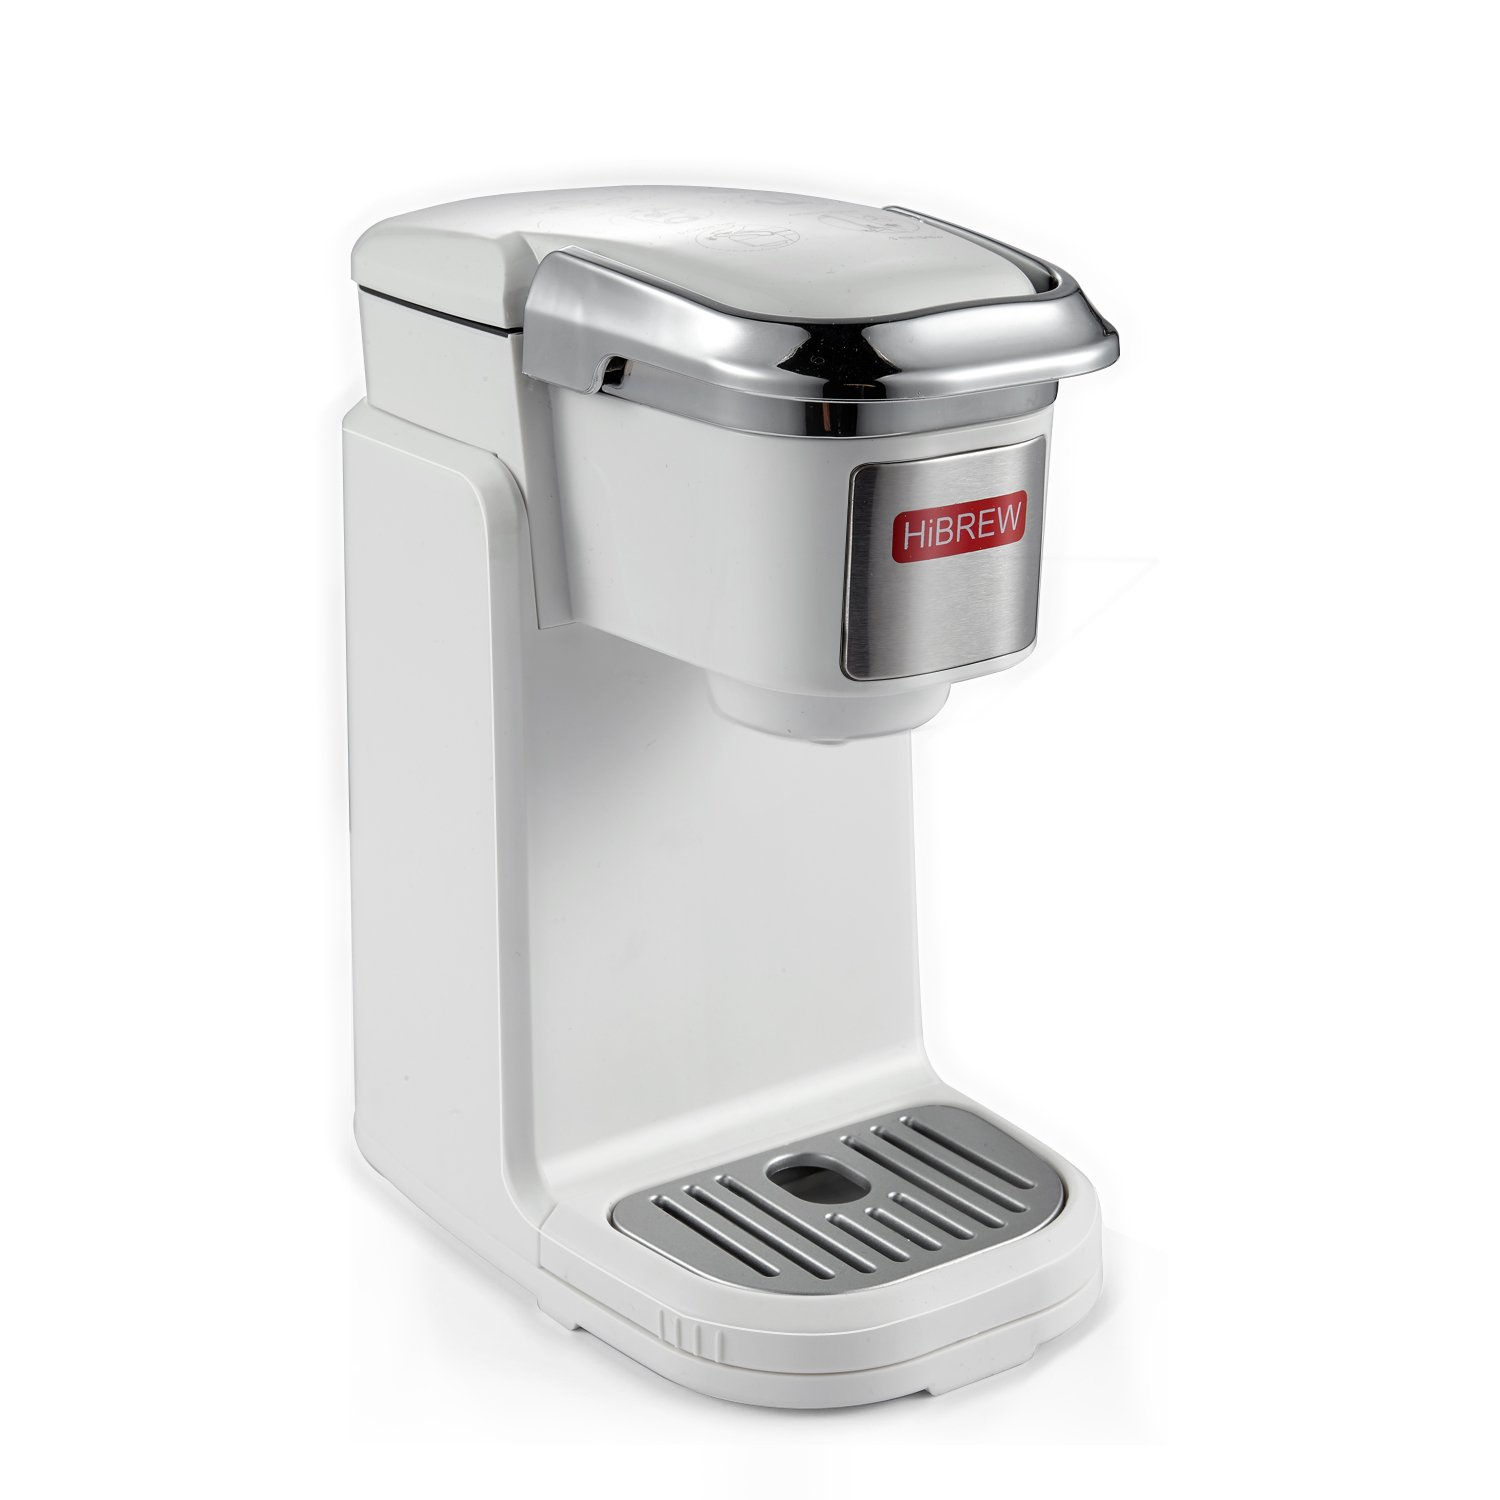 HiBREW Single Serve White Compact Portable Travel Size K Cup Coffee Maker Brewing System Coffee Machine for Office, Travel Camping and for Hotel Dorm Hospitality by HIBREW